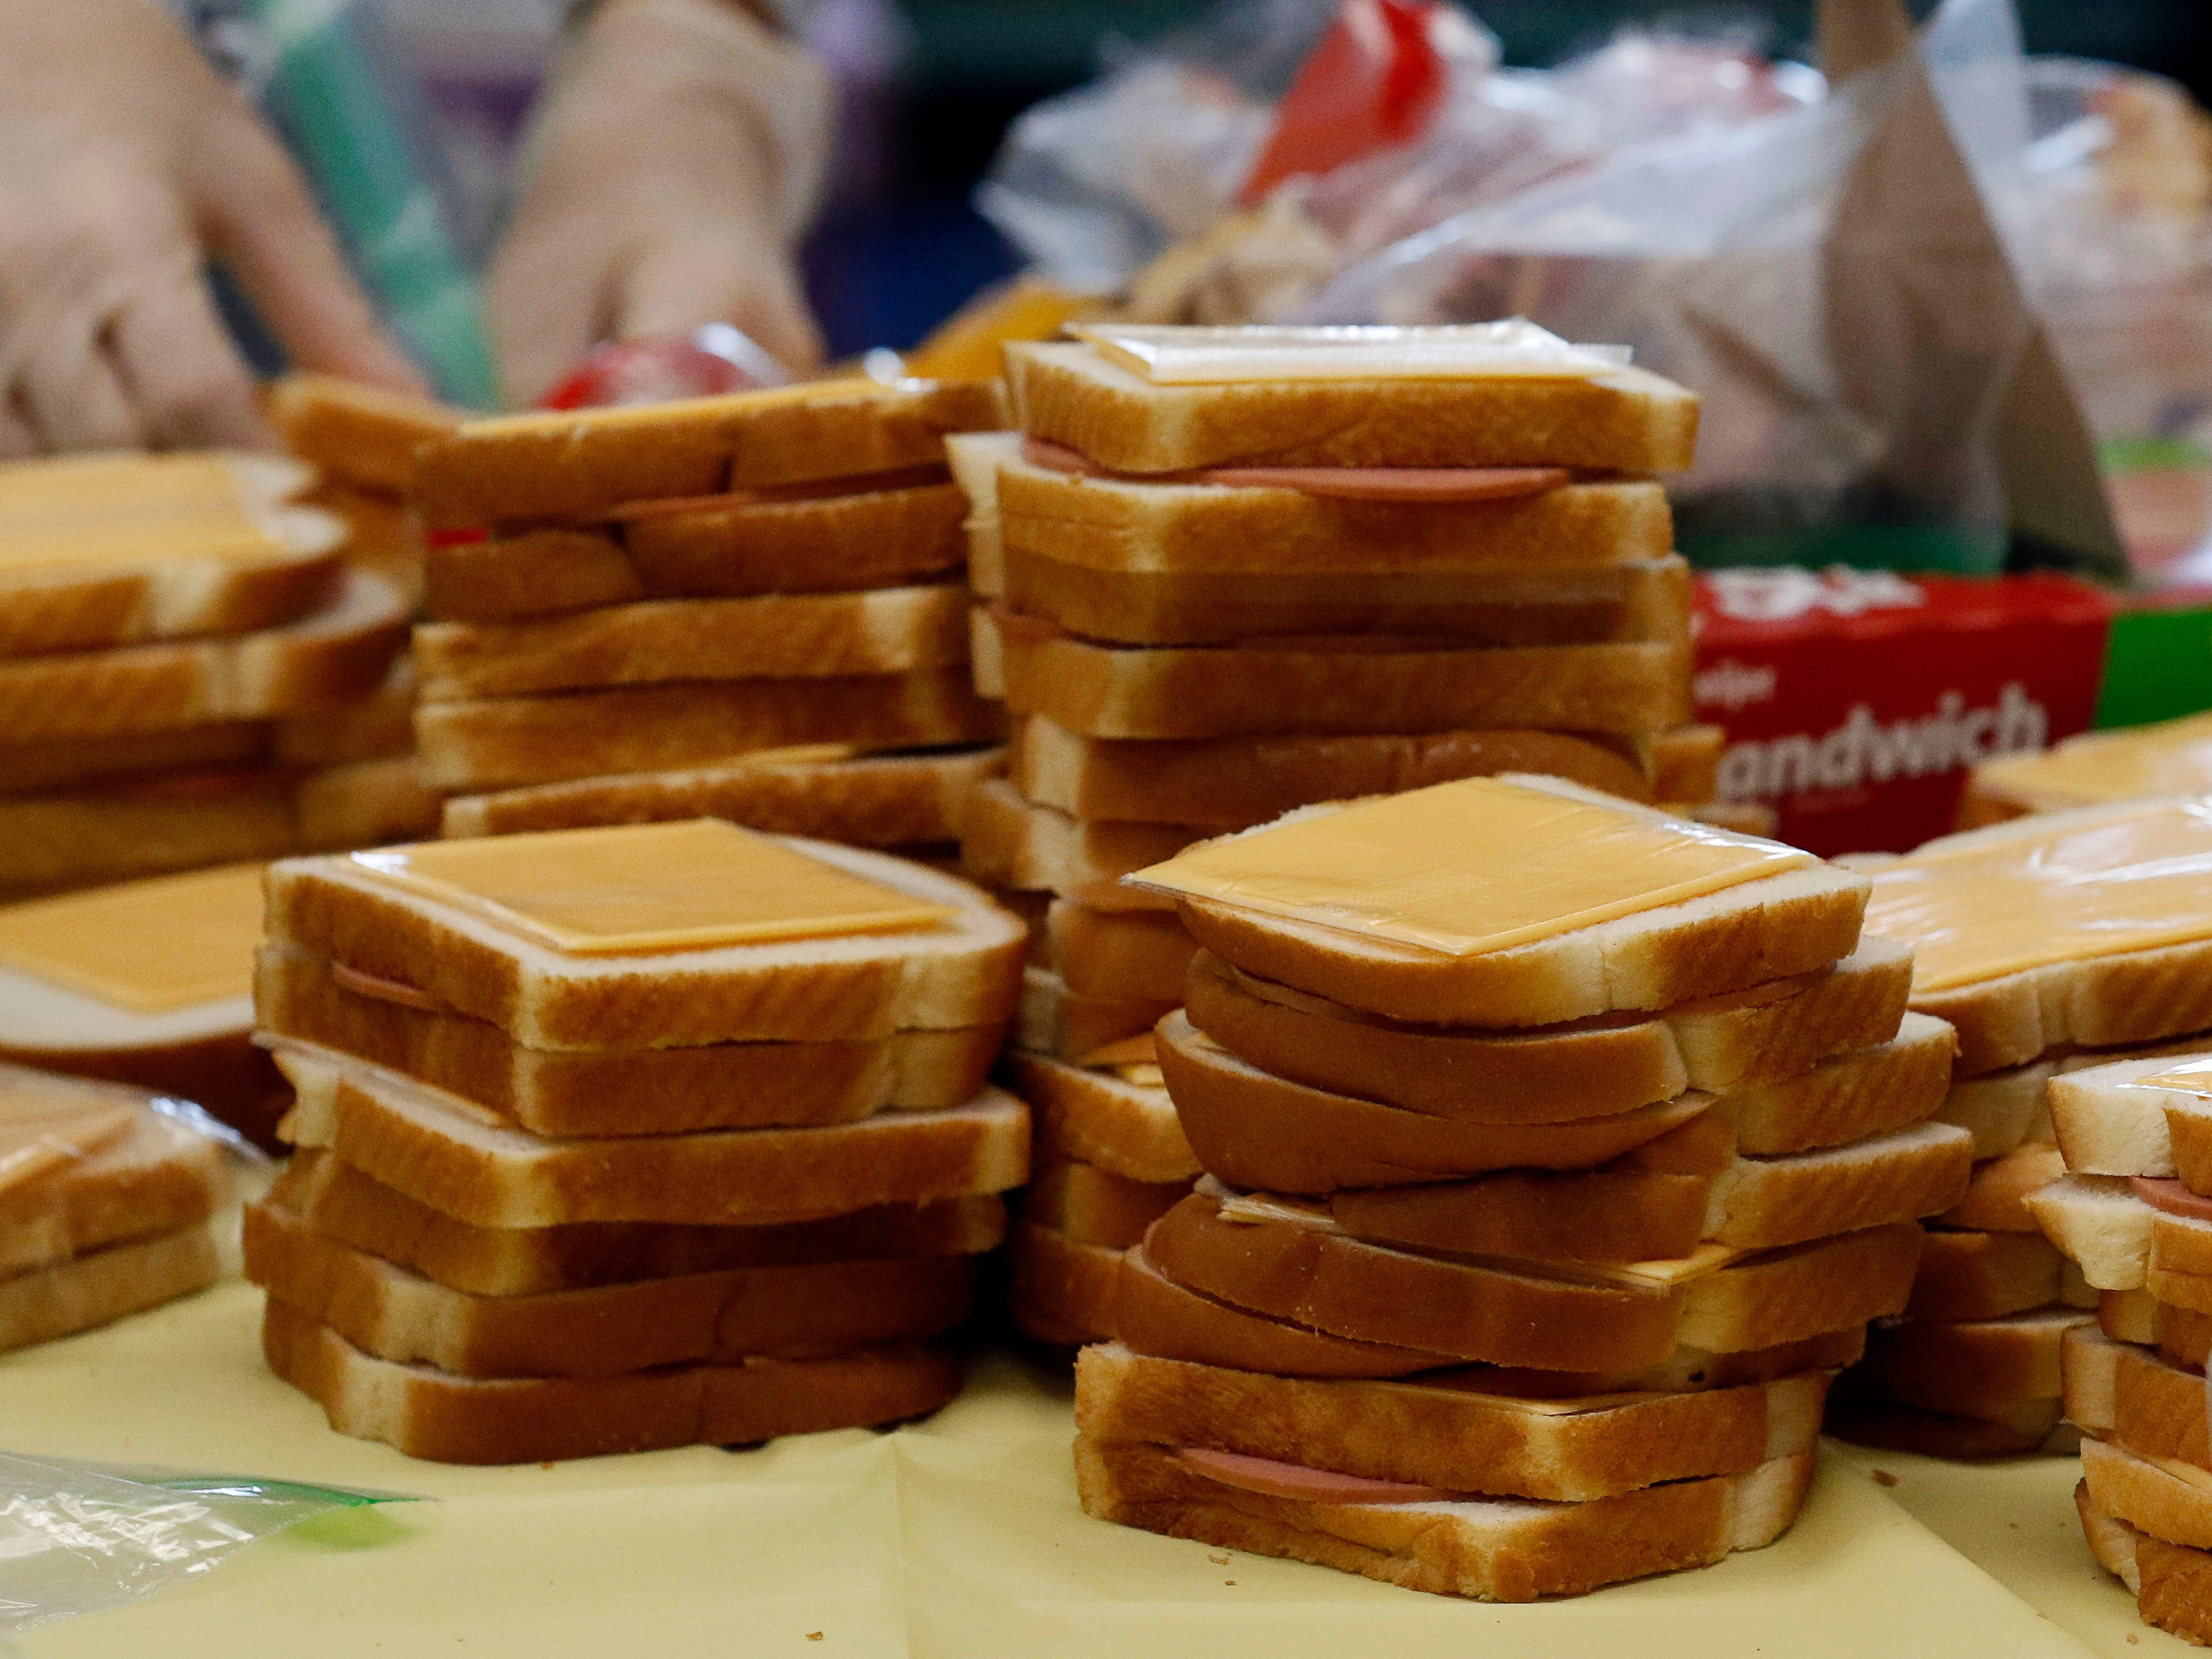 Stacks of bologna and cheese sandwiches wait to be bagged in Robin Sanders's fourth grade classroom Tuesday, Nov. 8, 2018, at St. Bernadette School in Lancaster.